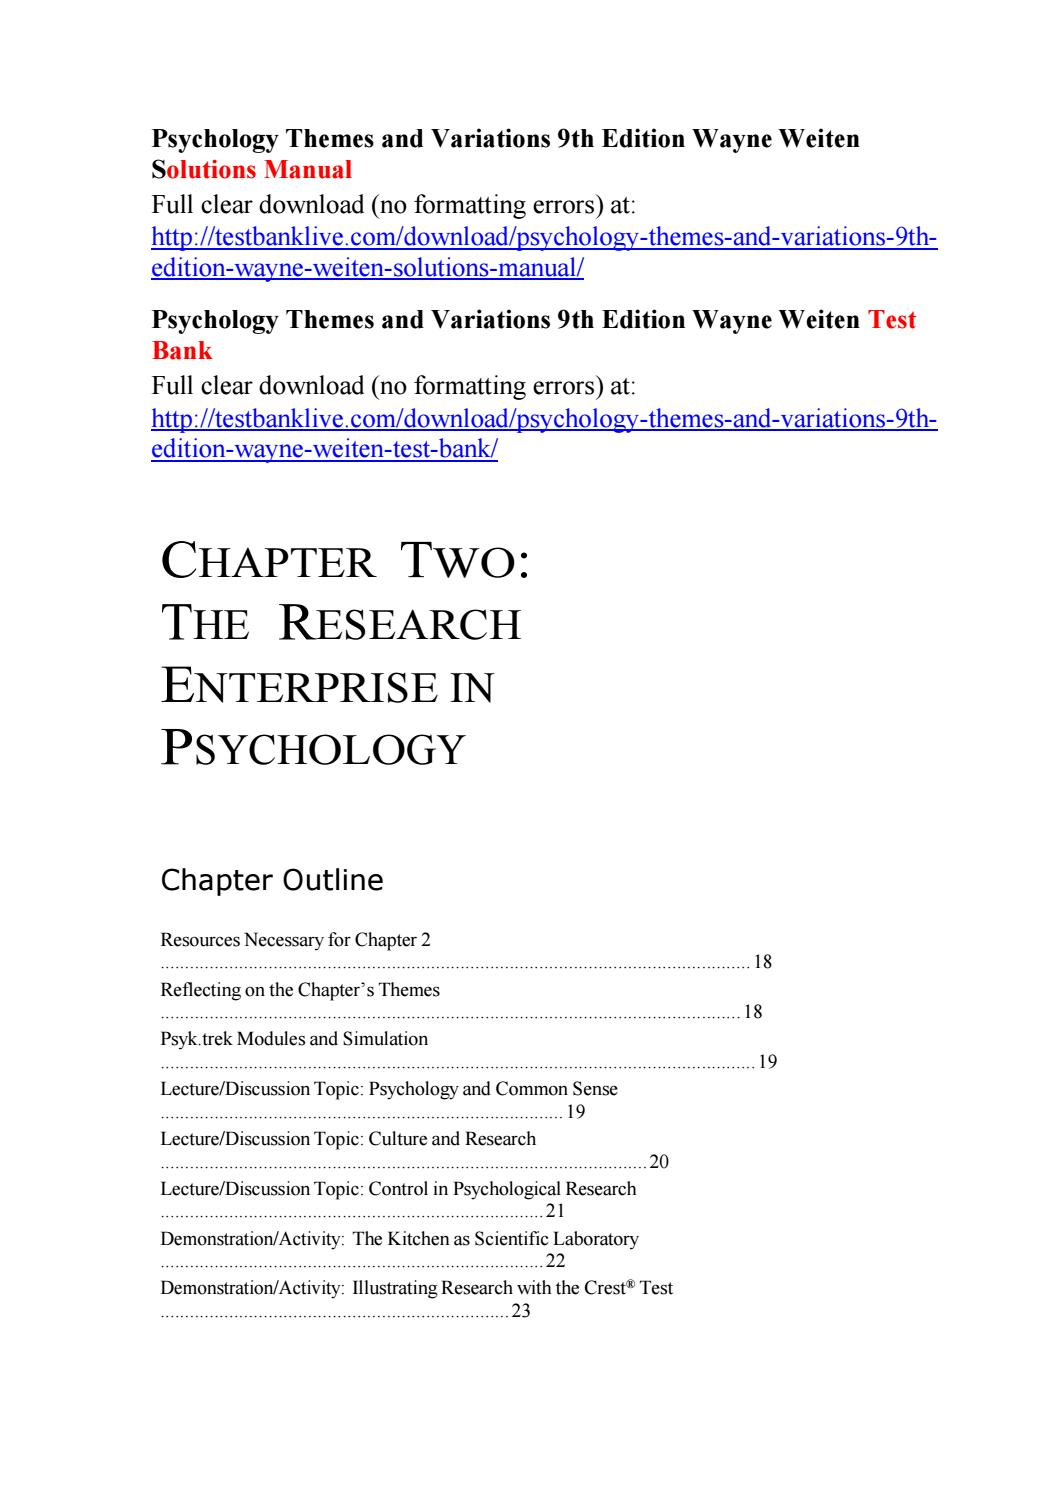 Psychology themes and variations 9th edition wayne weiten solutions manual  by Stair145 - issuu